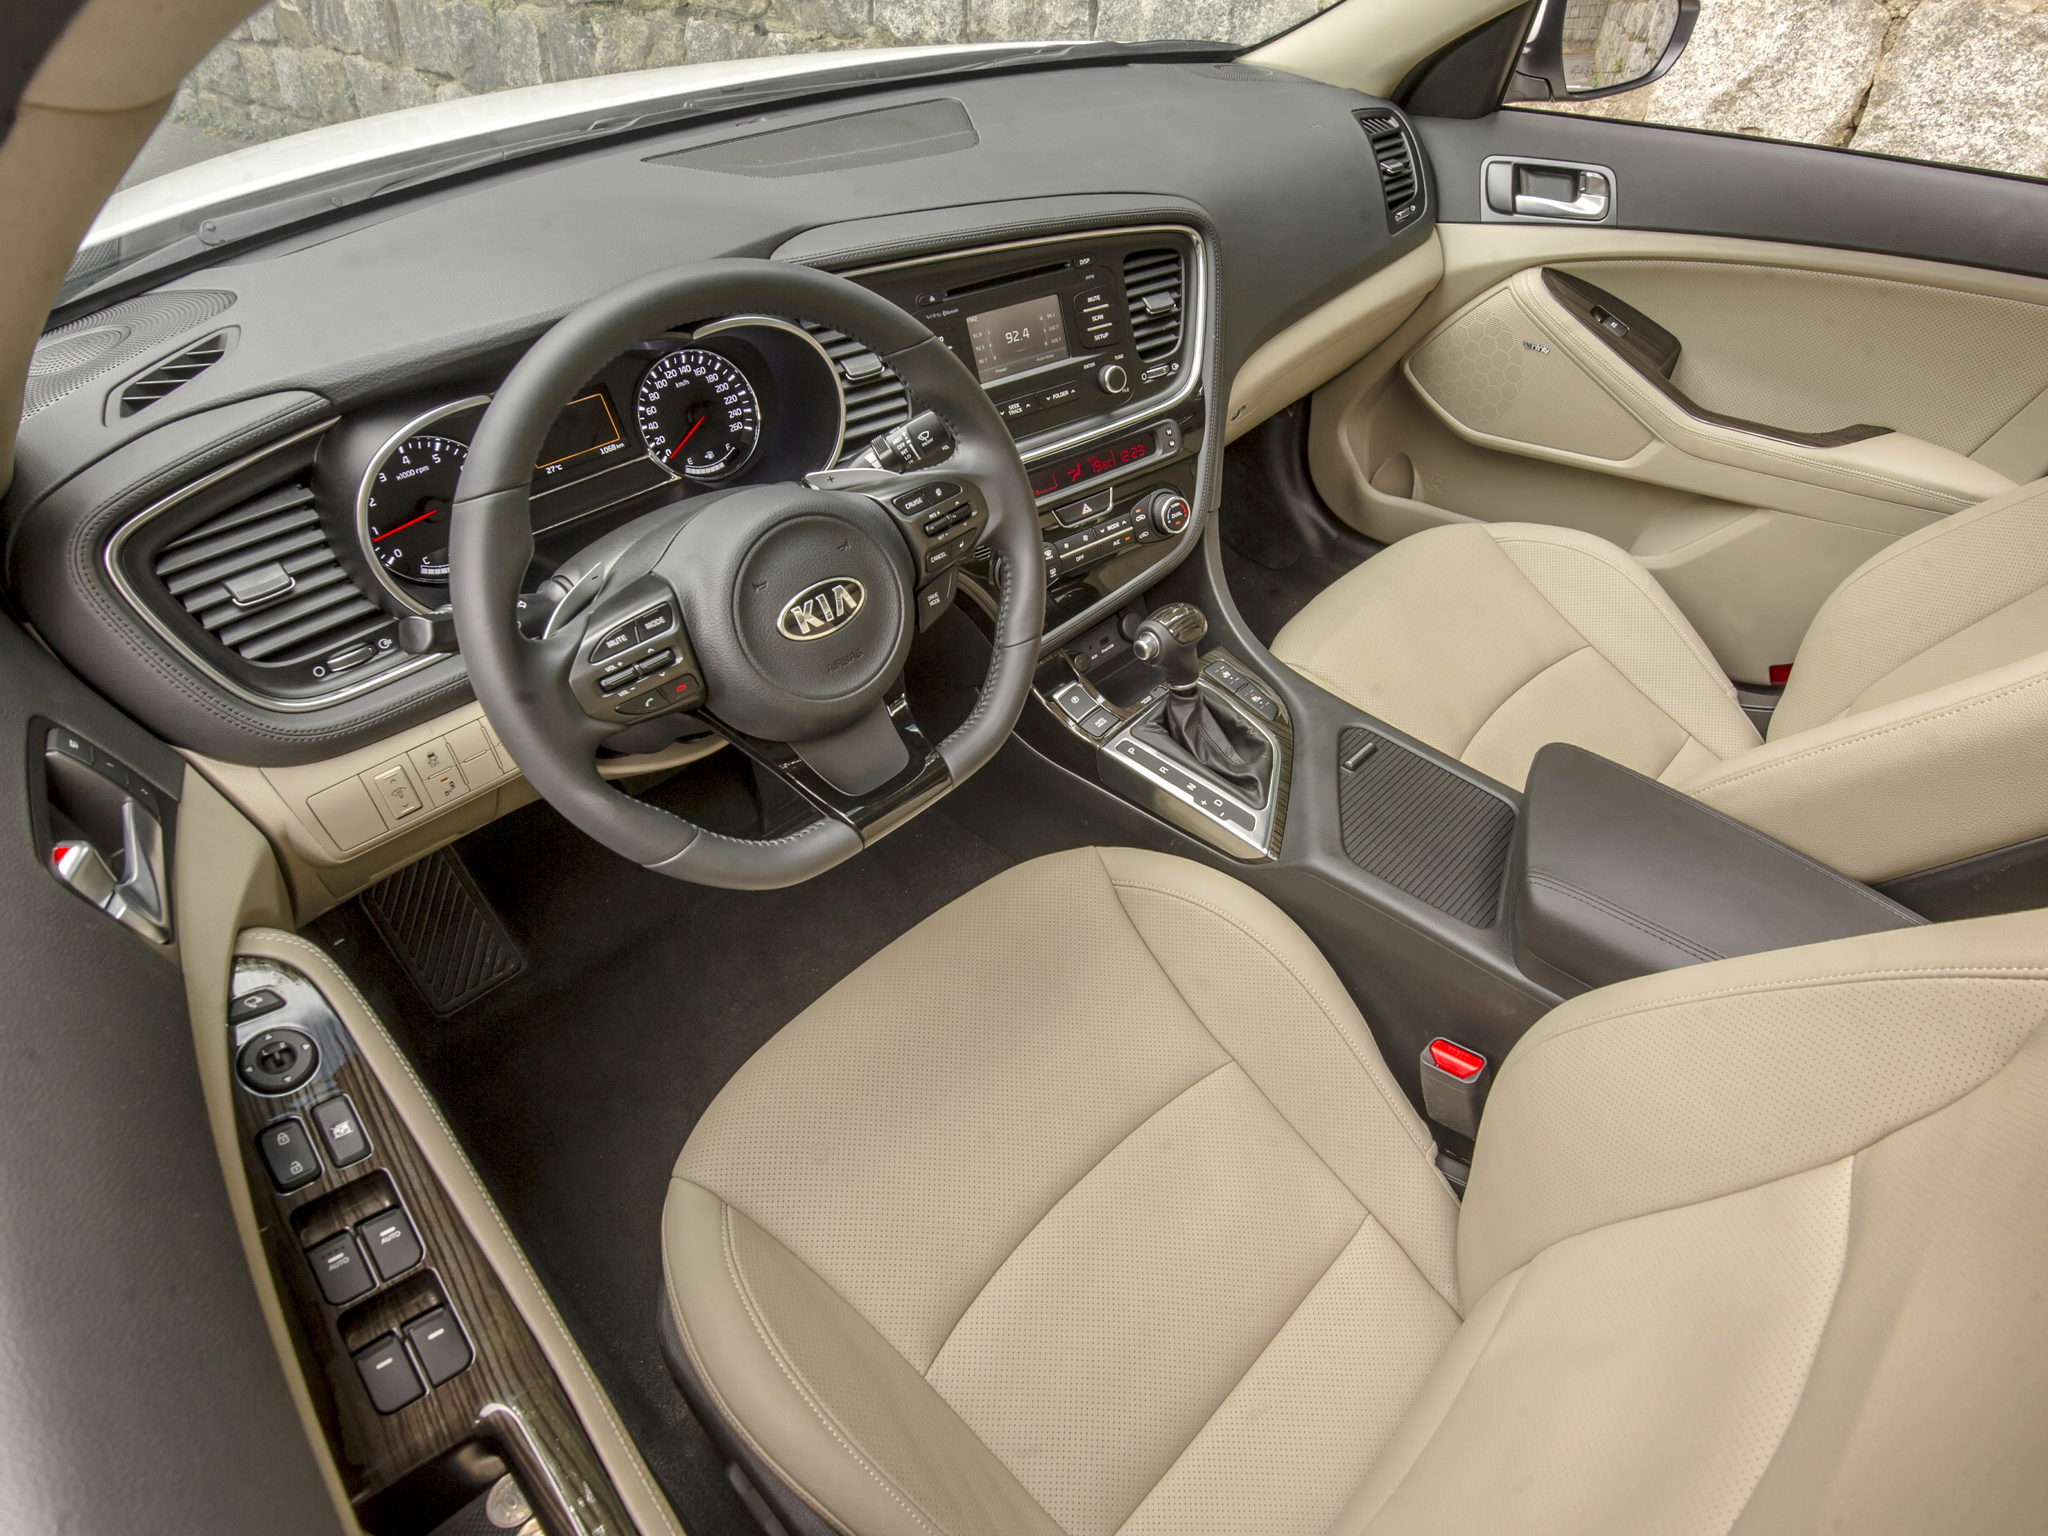 Optima interior hd jpg